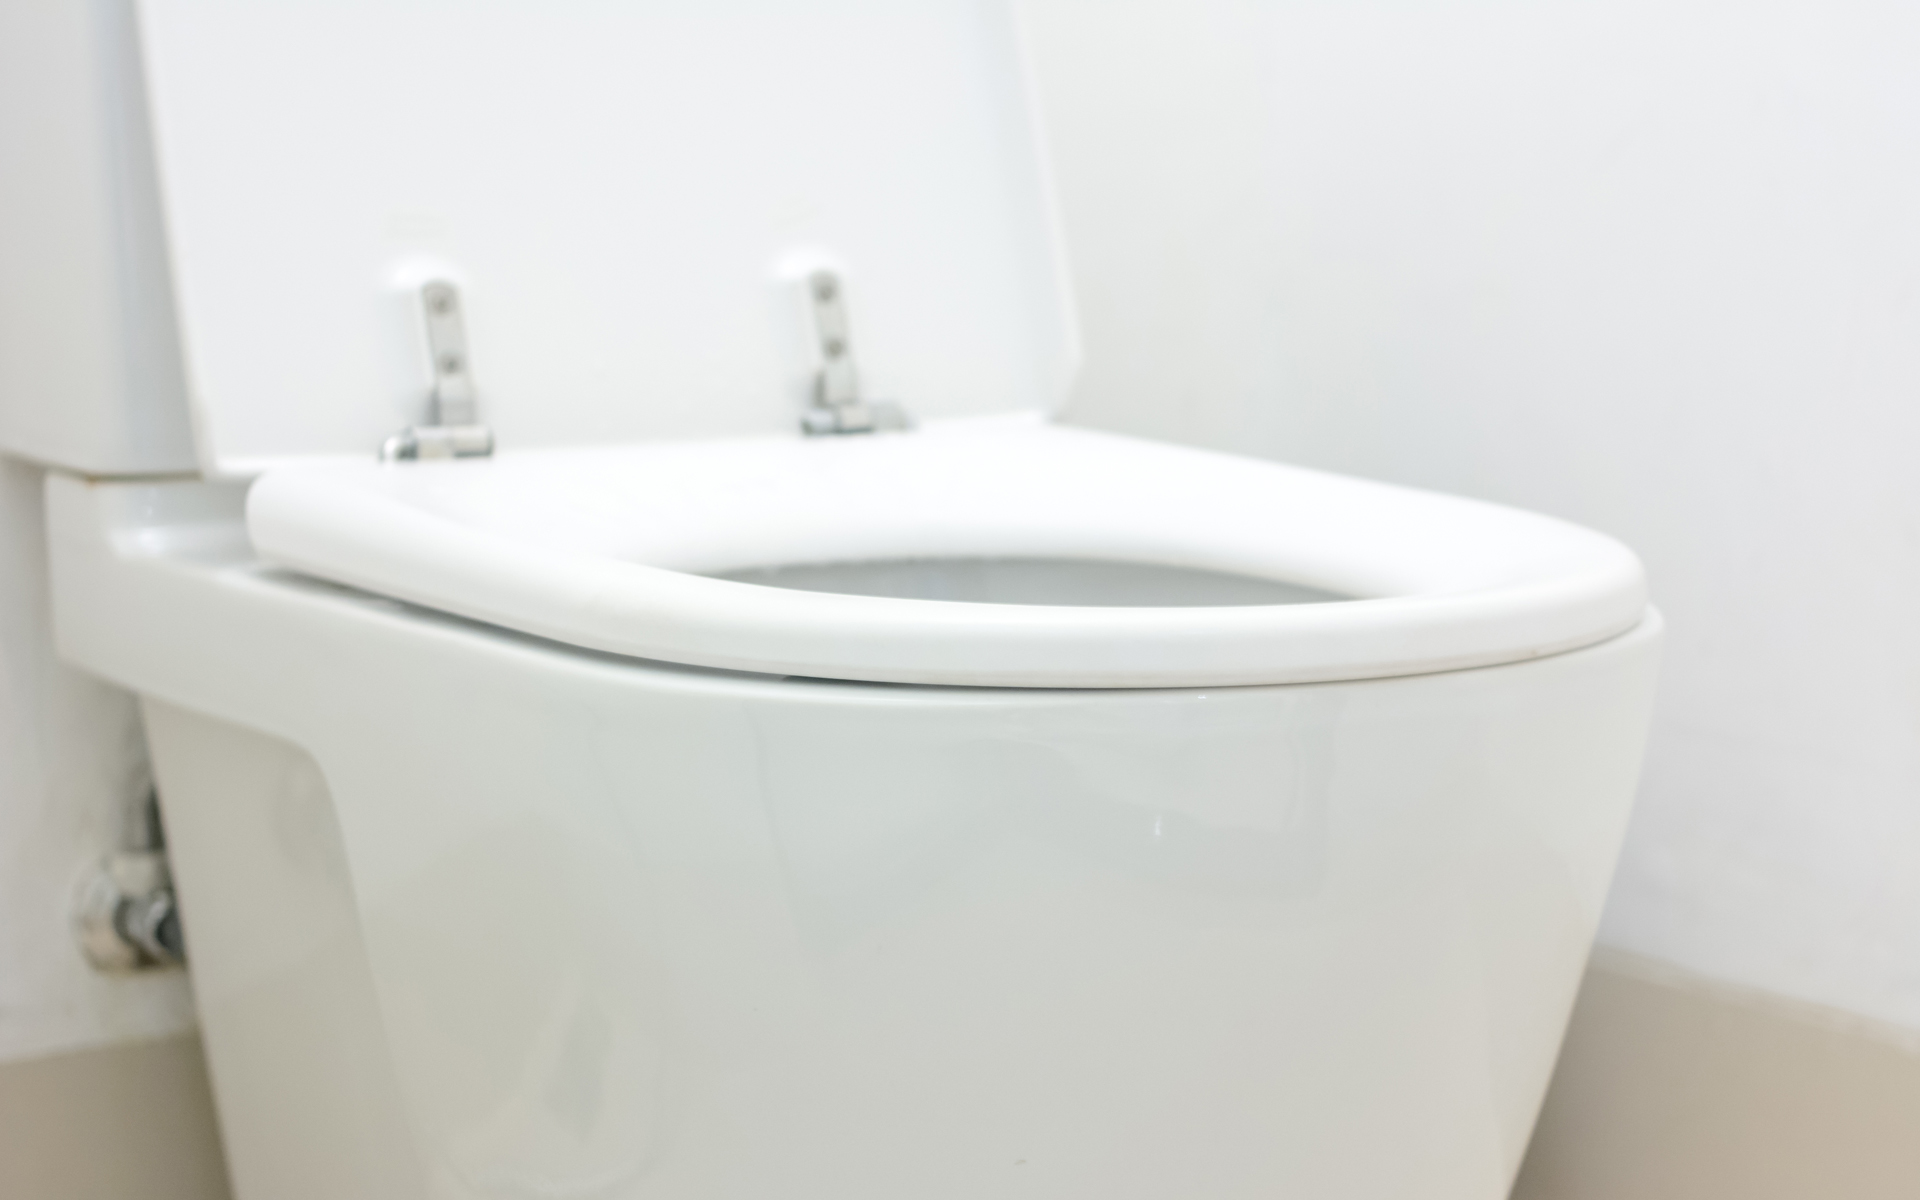 Pickerington Toilet Repair